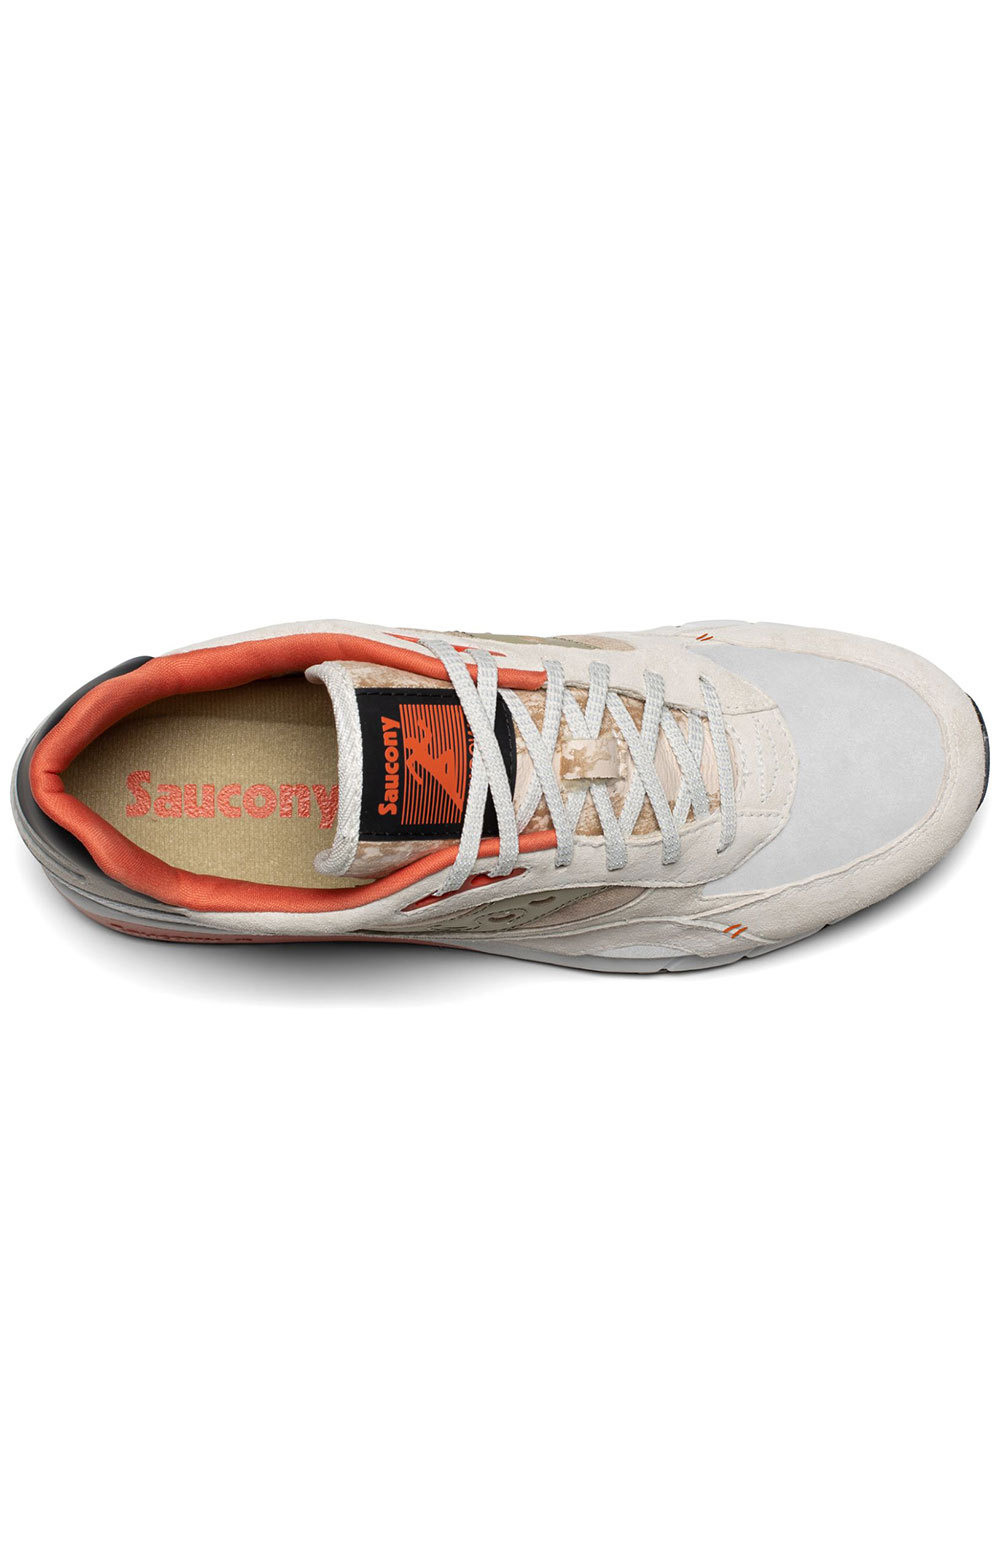 (S70587-3) Shadow 6000 Shoes - White/Clay 3